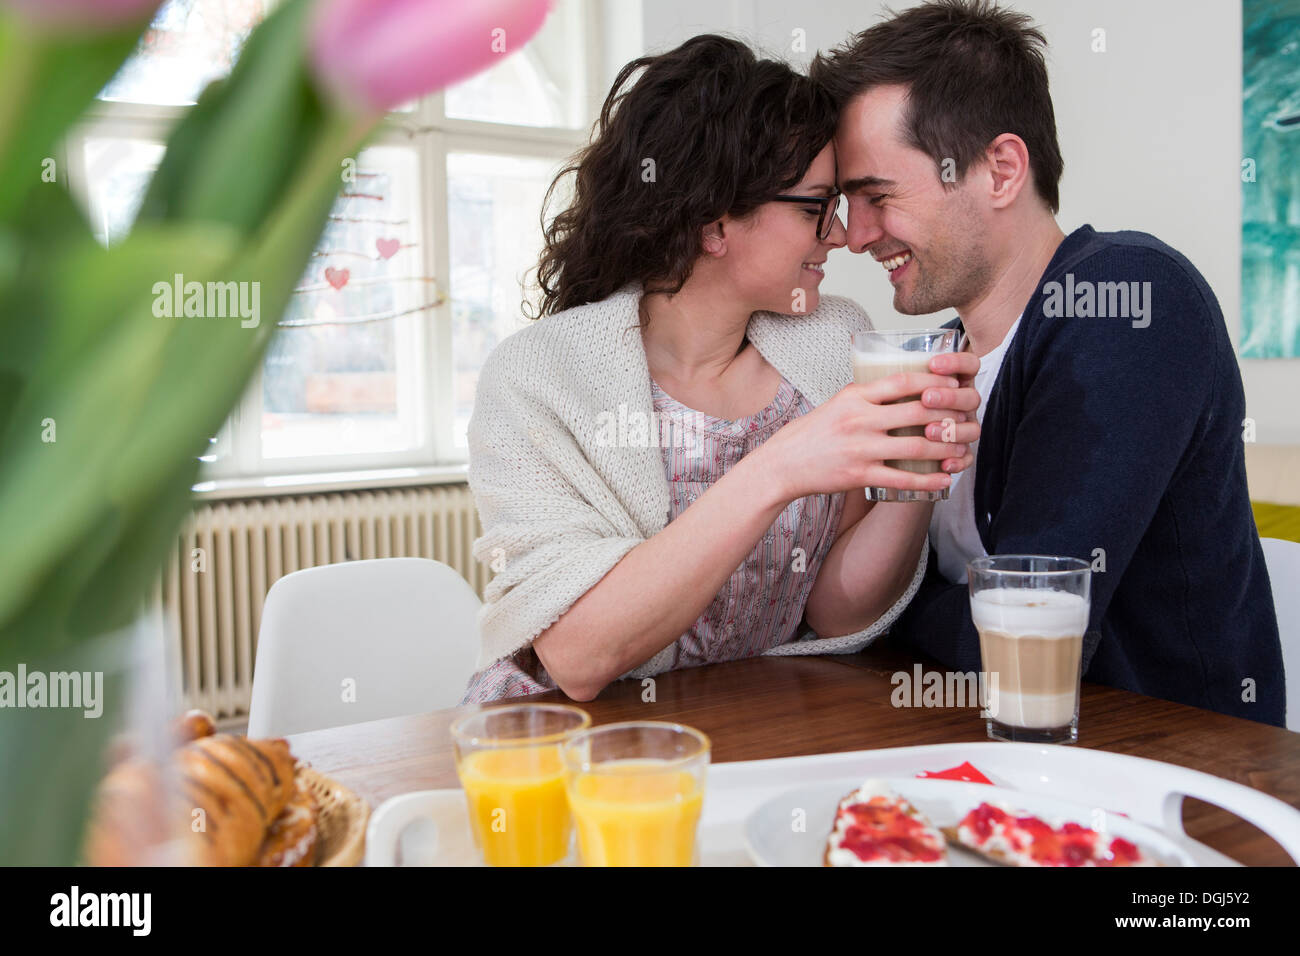 Heterosexual couple face to face at breakfast table - Stock Image